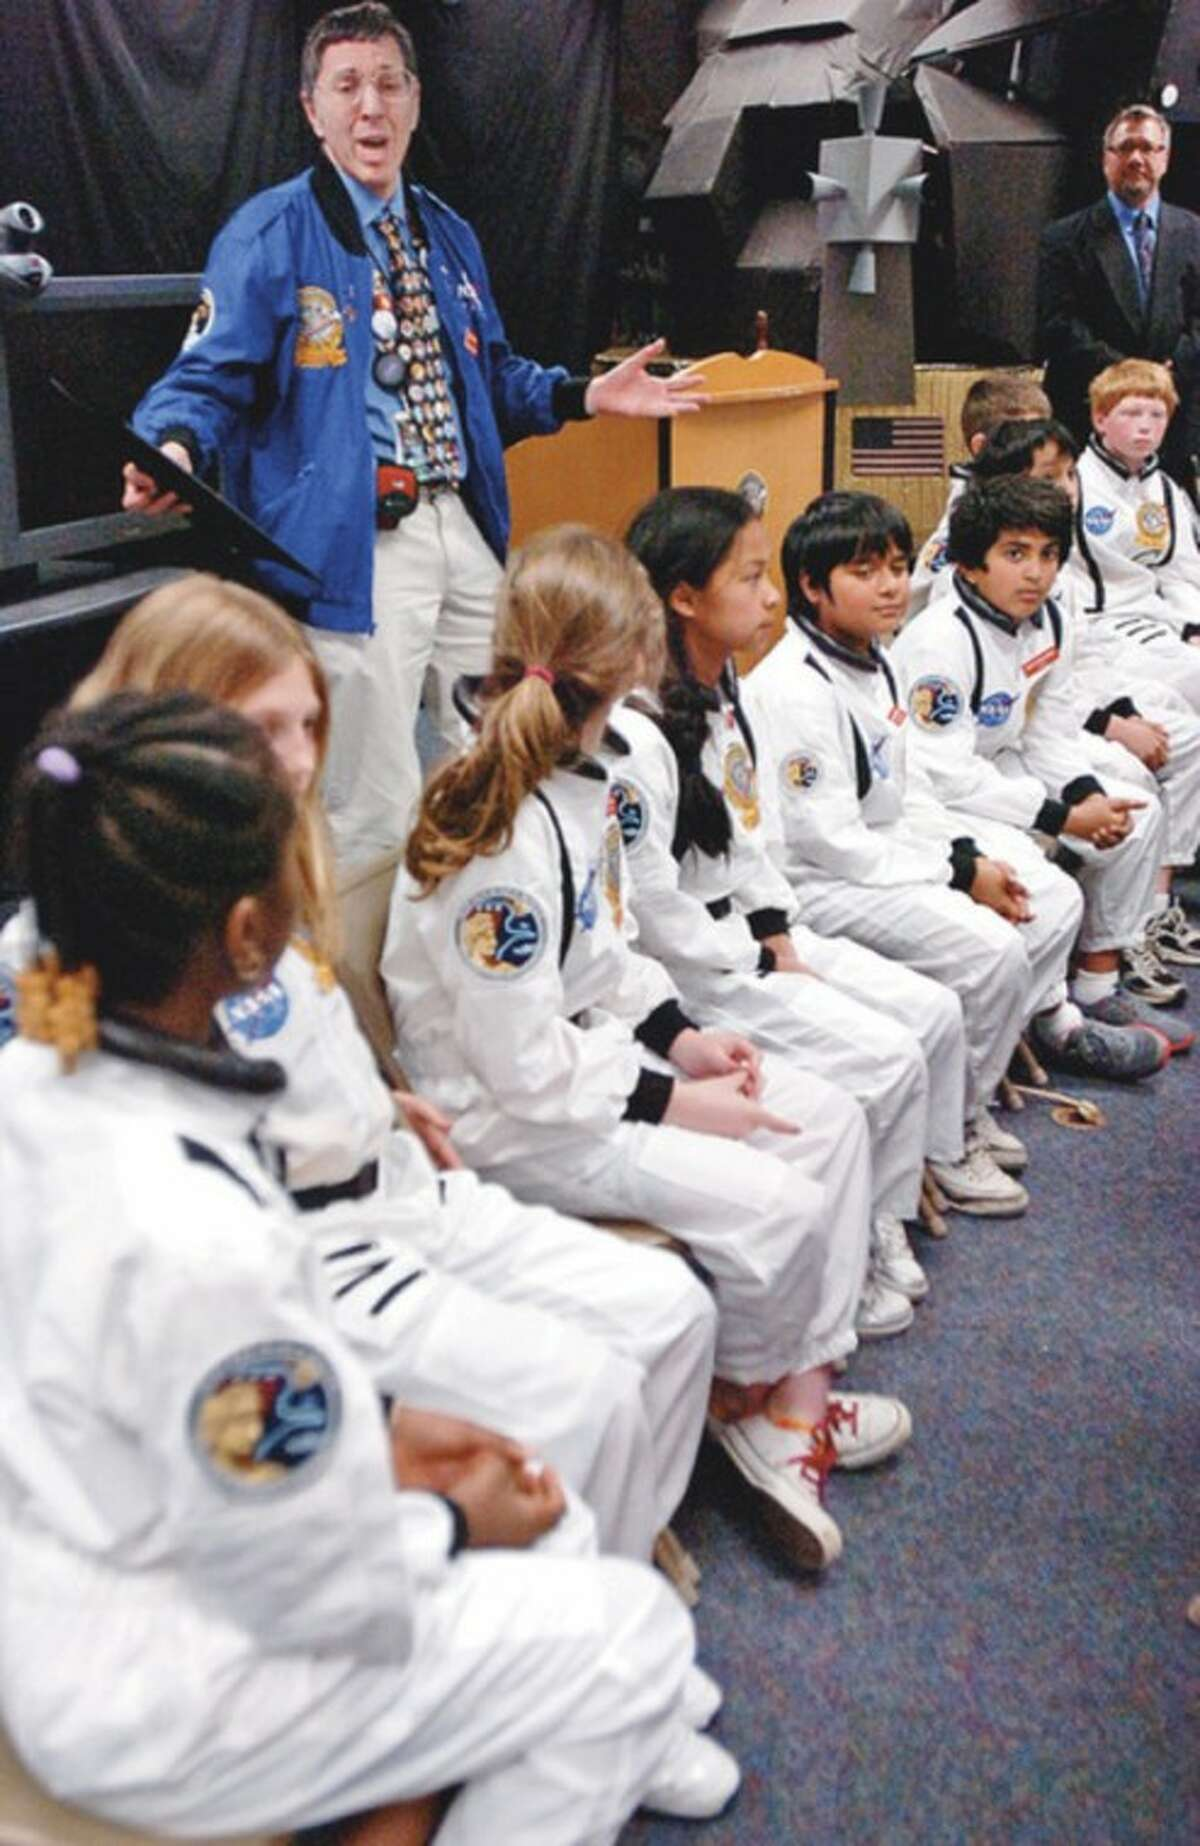 Program Director Andrew Pearce congratulates his crew after completing their simulated mission, XVII Quadragesimal, as part of Columbus Magnet School's Young Astronaut program Friday. Hour photo / Erik Trautmann